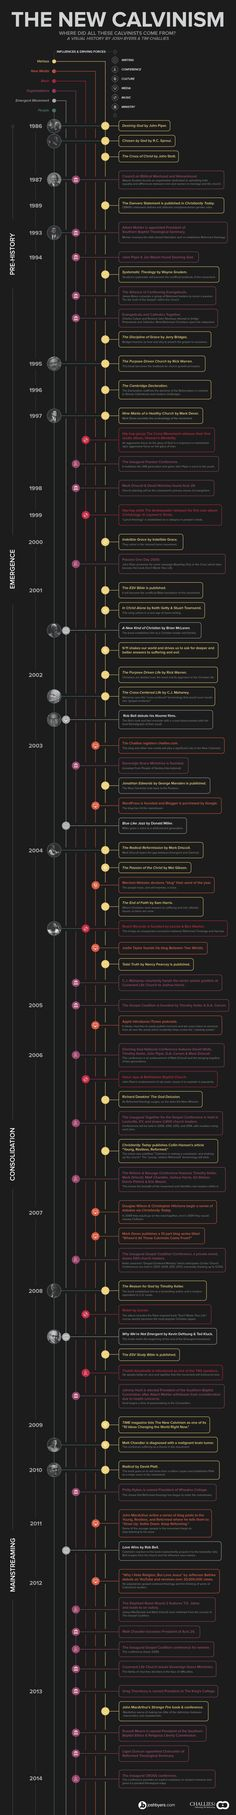 Infographic: History of New Calvinism - A very interesting timeline.